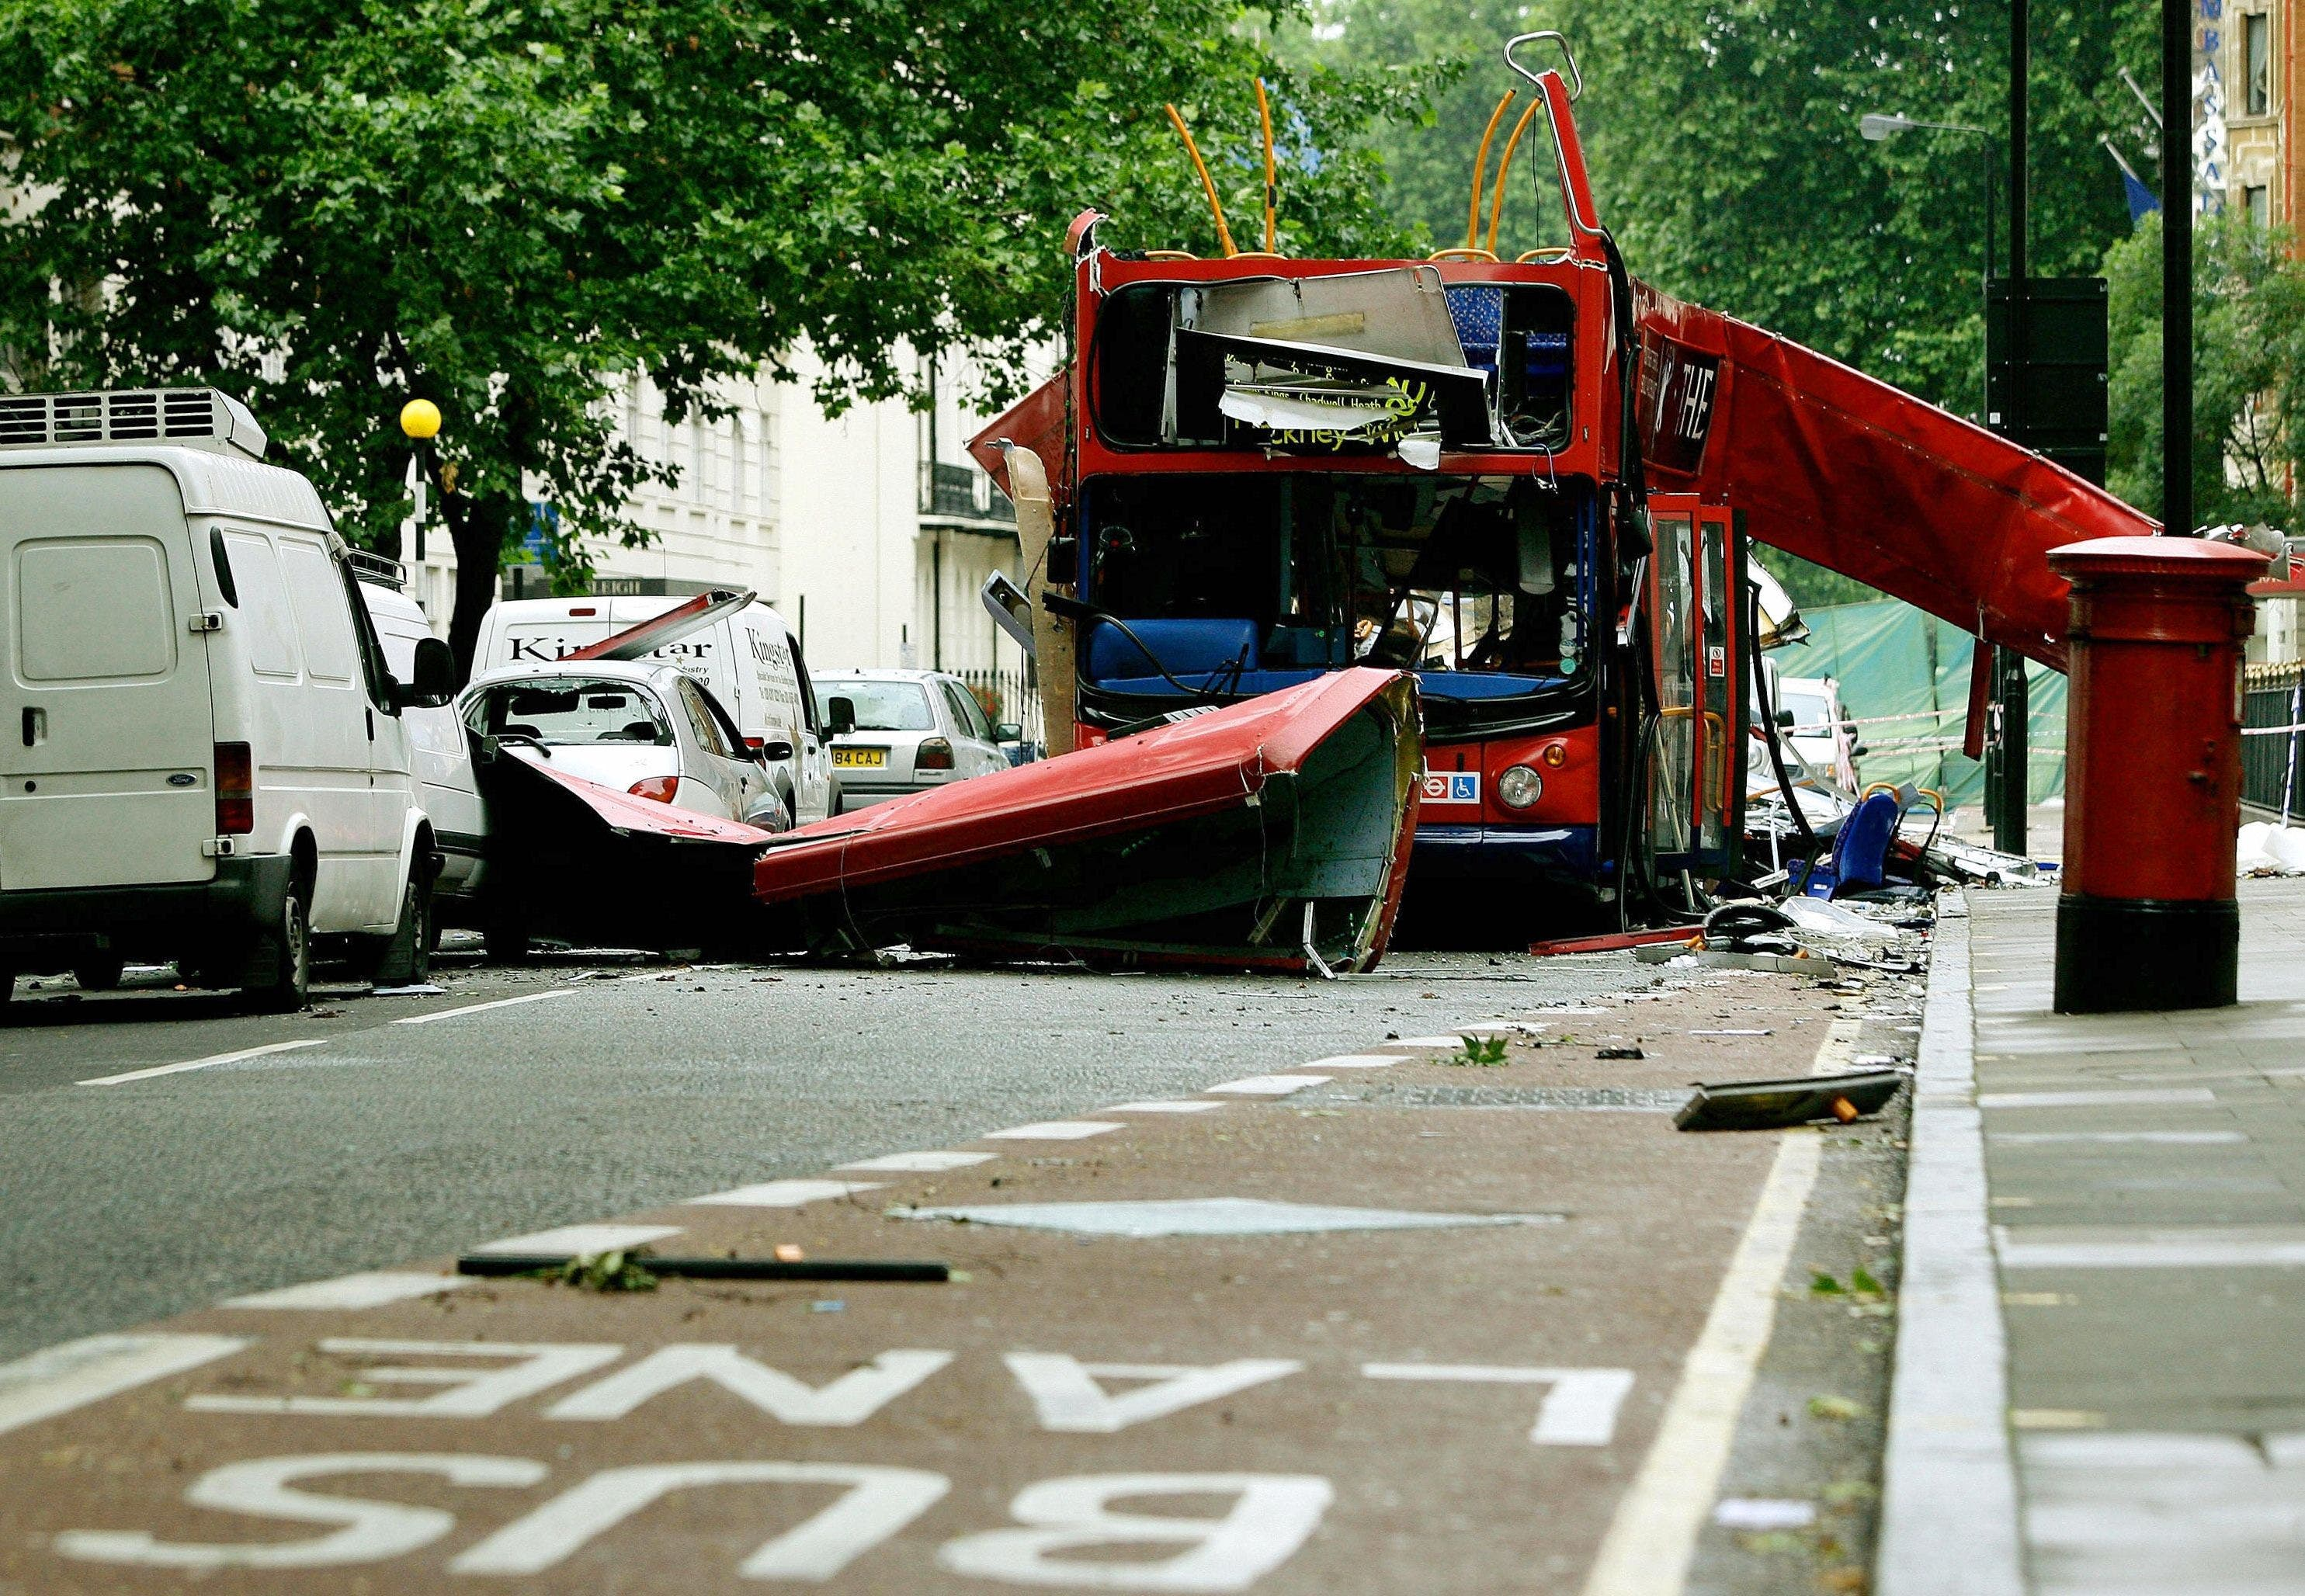 A file picture taken on July 8, 2005, shows the Number 30 London bus after it was damaged by an explosion.(AFP)